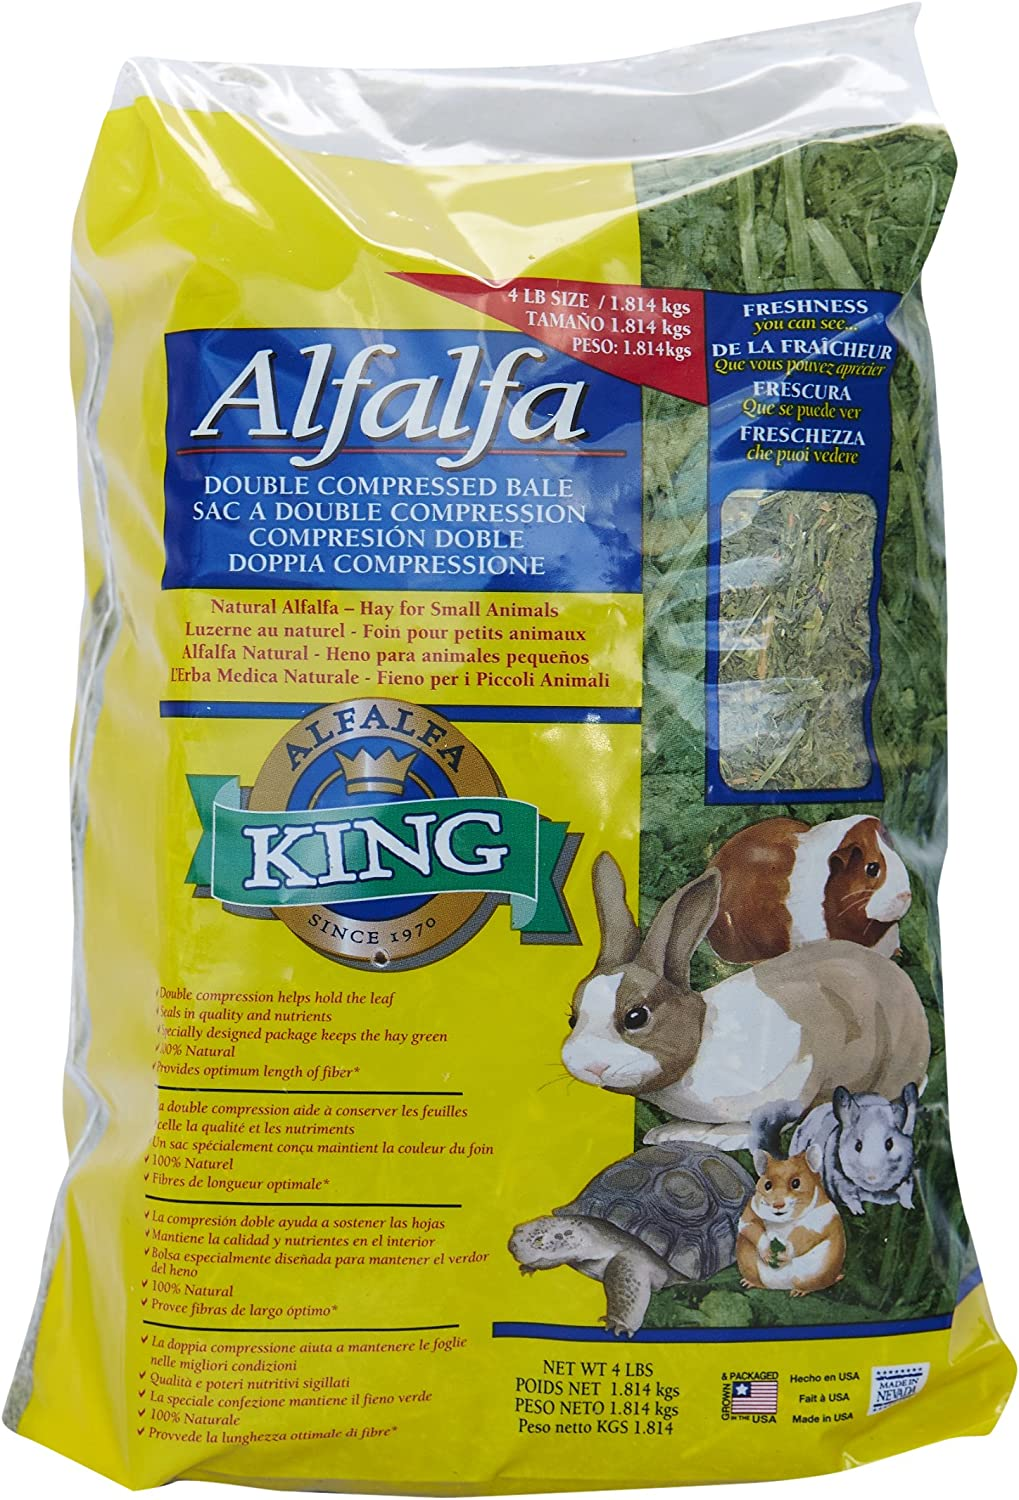 Alfalfa King Double Compressed Alfalfa Hay Pet Food Treat, 12 By 9 By 5-Inch